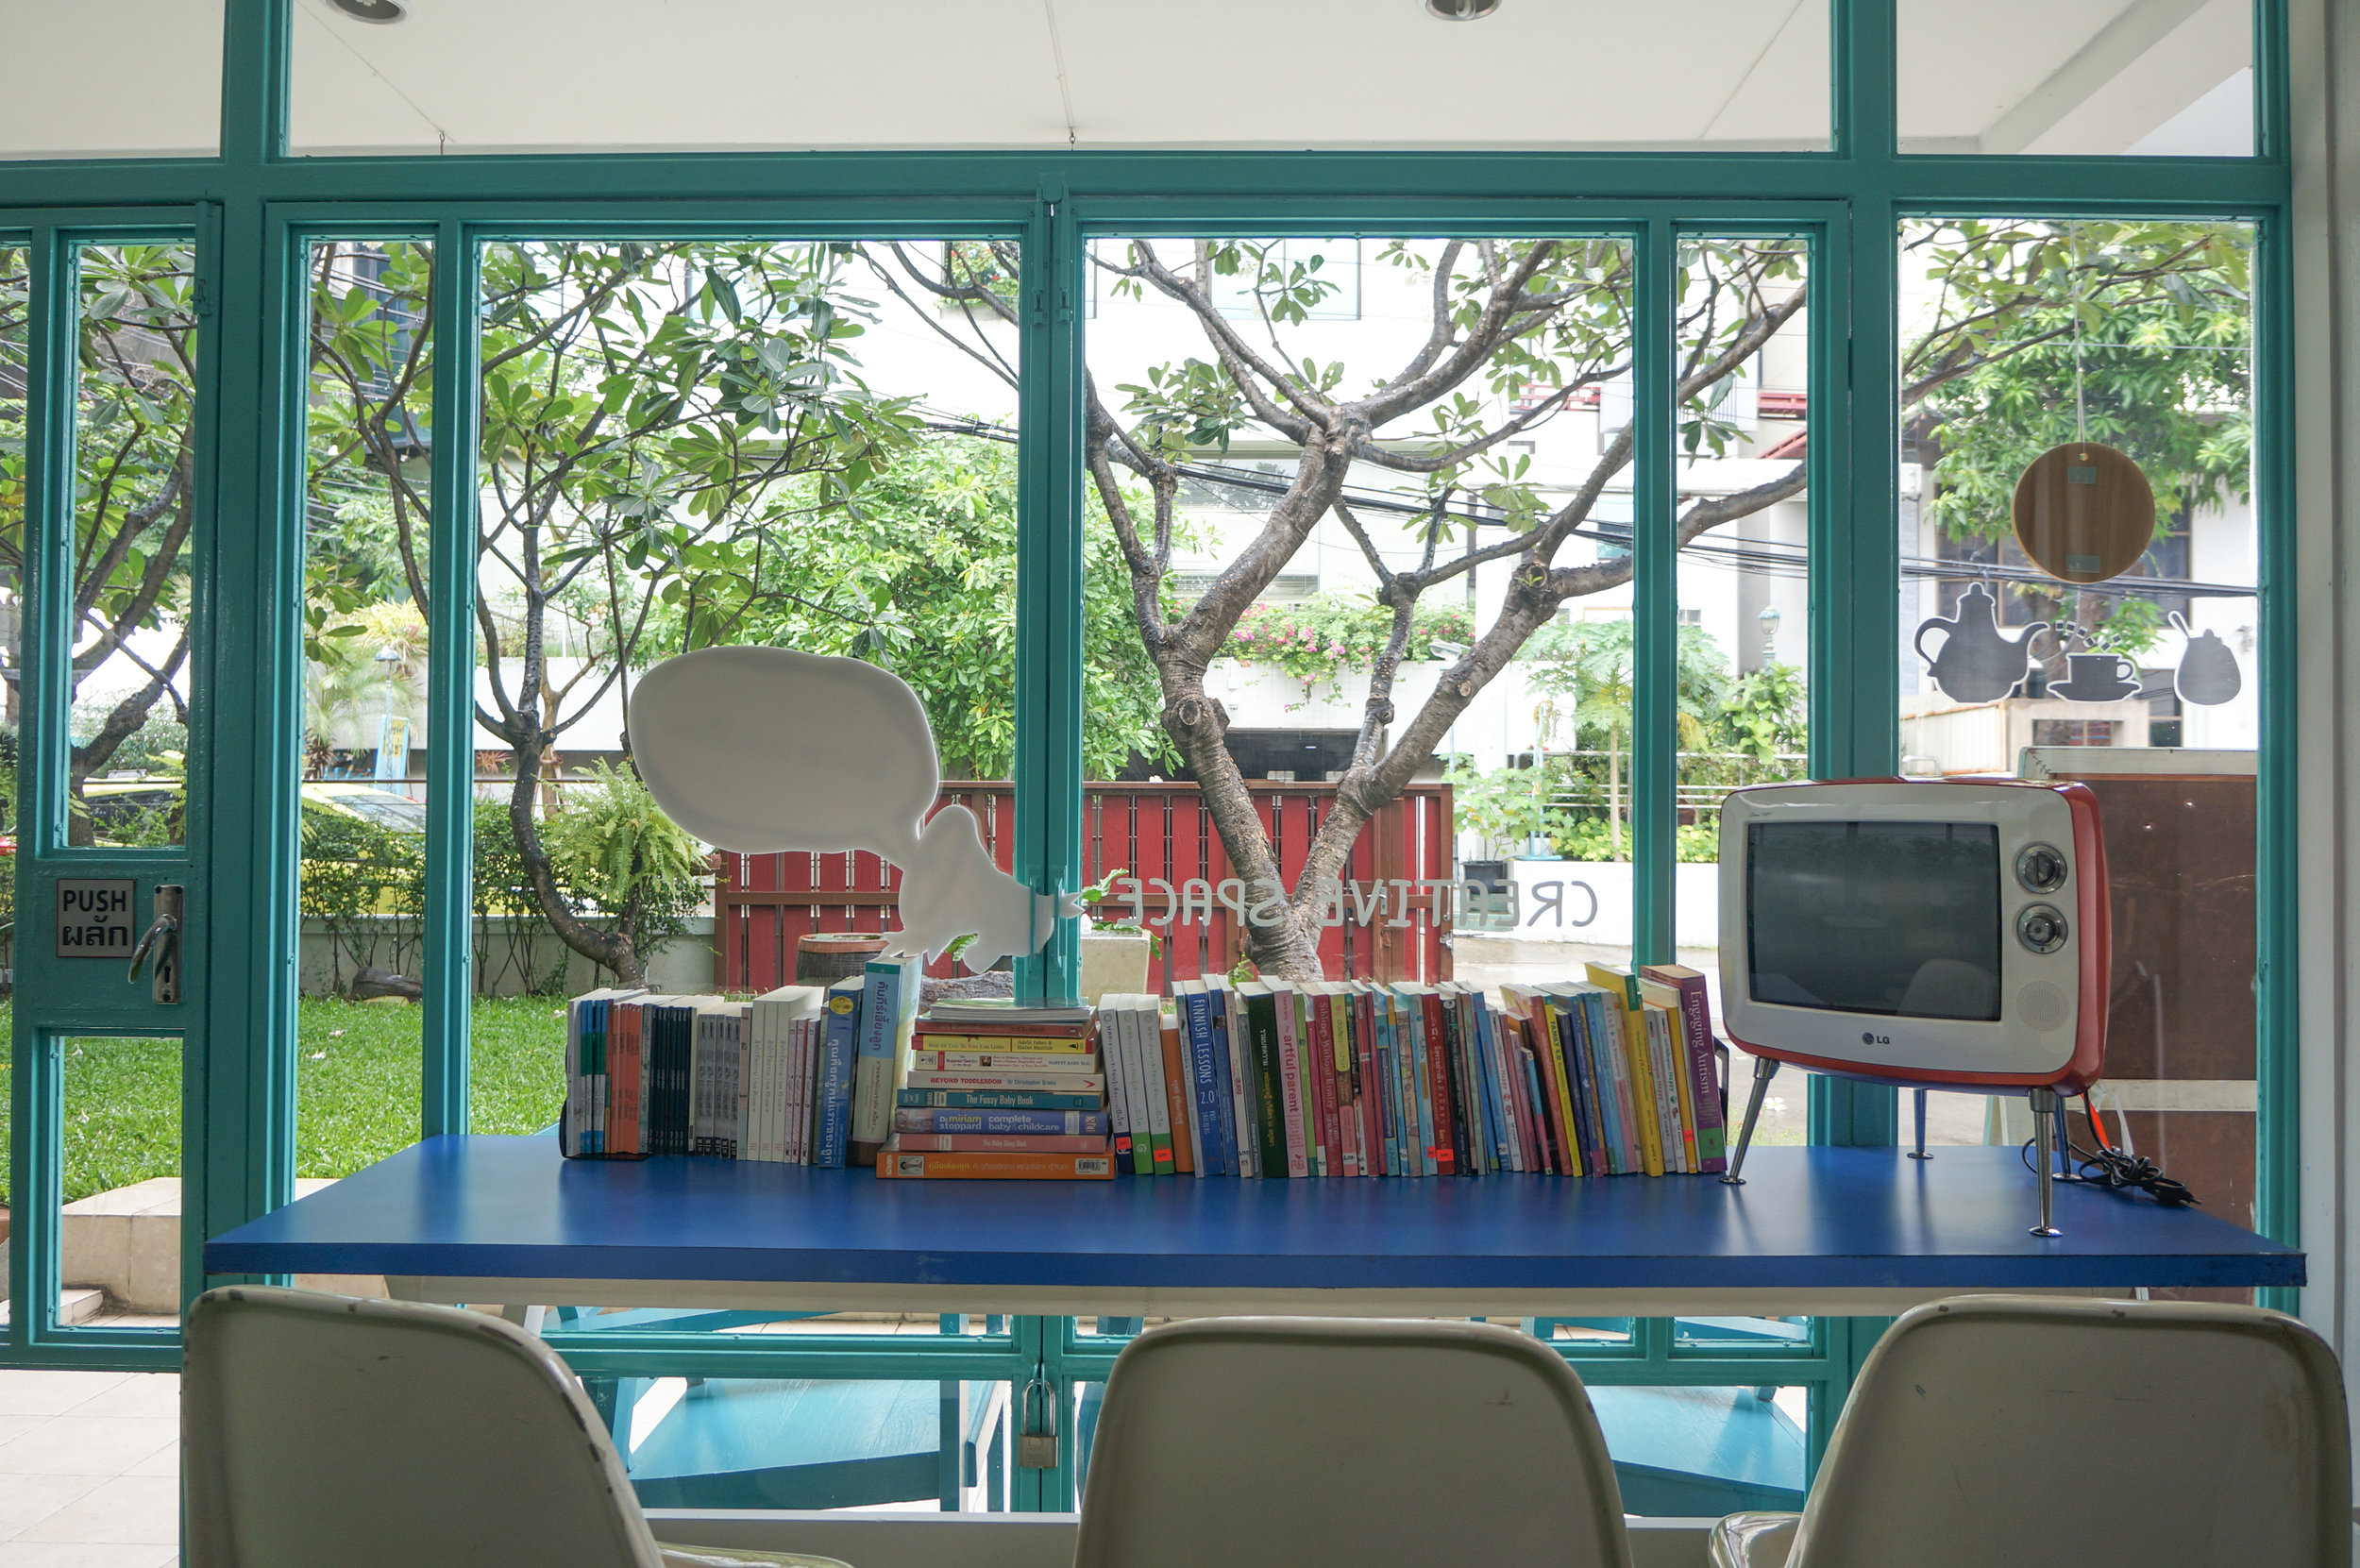 Blue Door Creative Space: The kids library